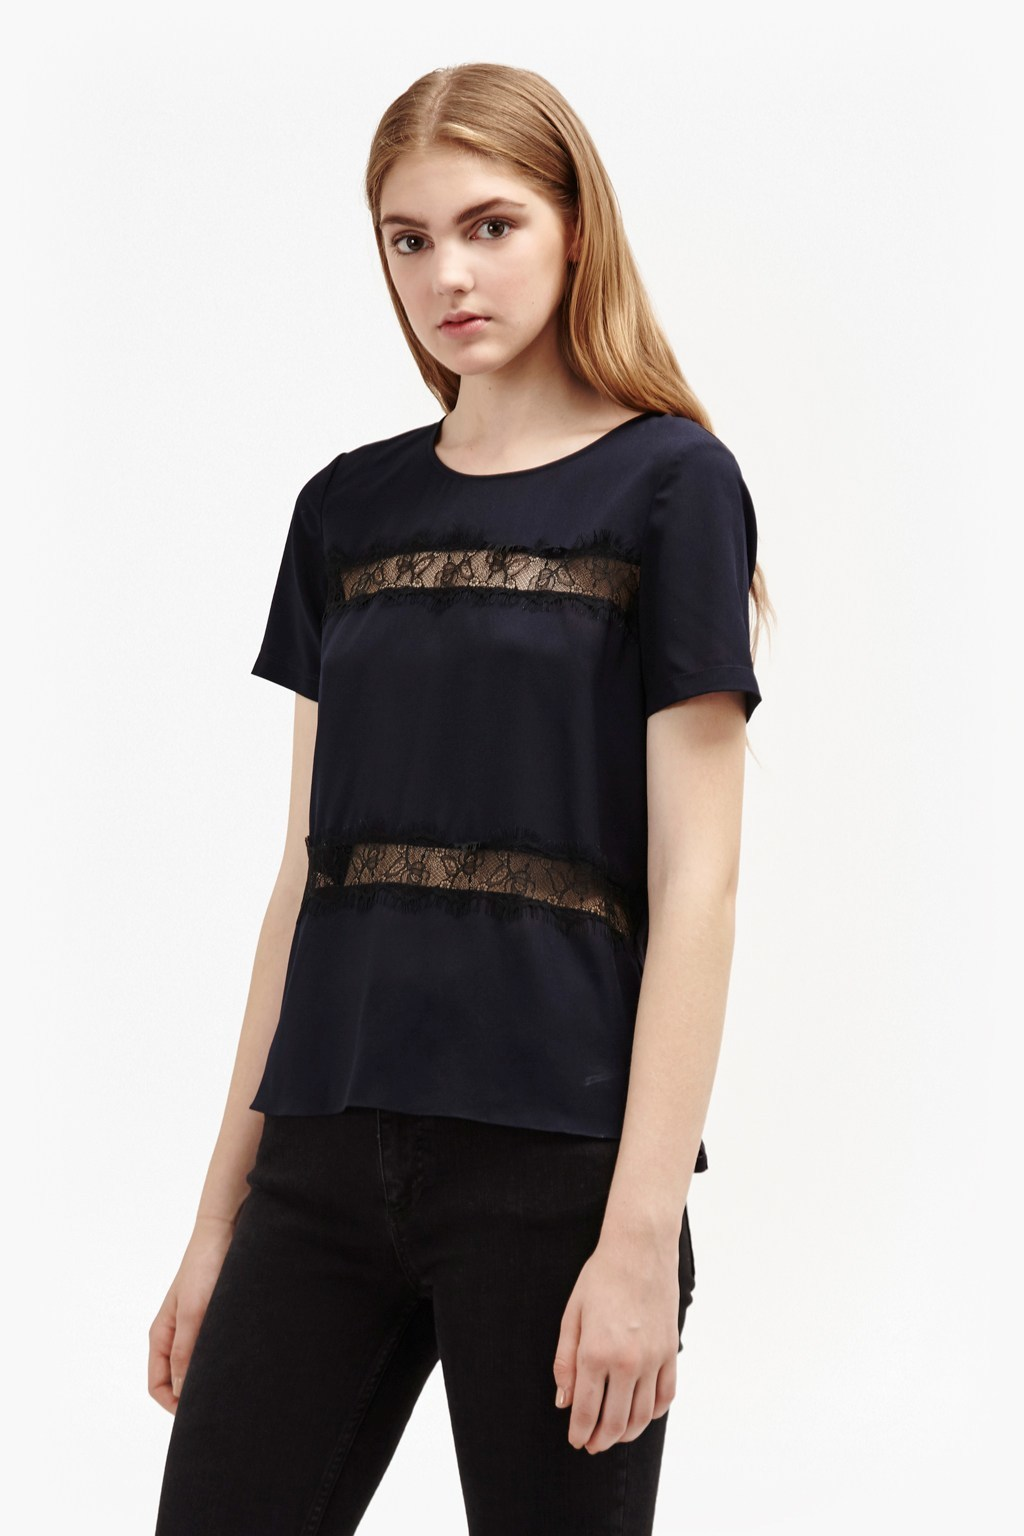 Polly Plains Lace Inserts Top Black - style: t-shirt; predominant colour: navy; occasions: evening, creative work; length: standard; fibres: polyester/polyamide - 100%; fit: straight cut; neckline: crew; sleeve length: short sleeve; sleeve style: standard; texture group: silky - light; pattern type: fabric; pattern size: standard; pattern: patterned/print; embellishment: lace; season: a/w 2016; wardrobe: highlight